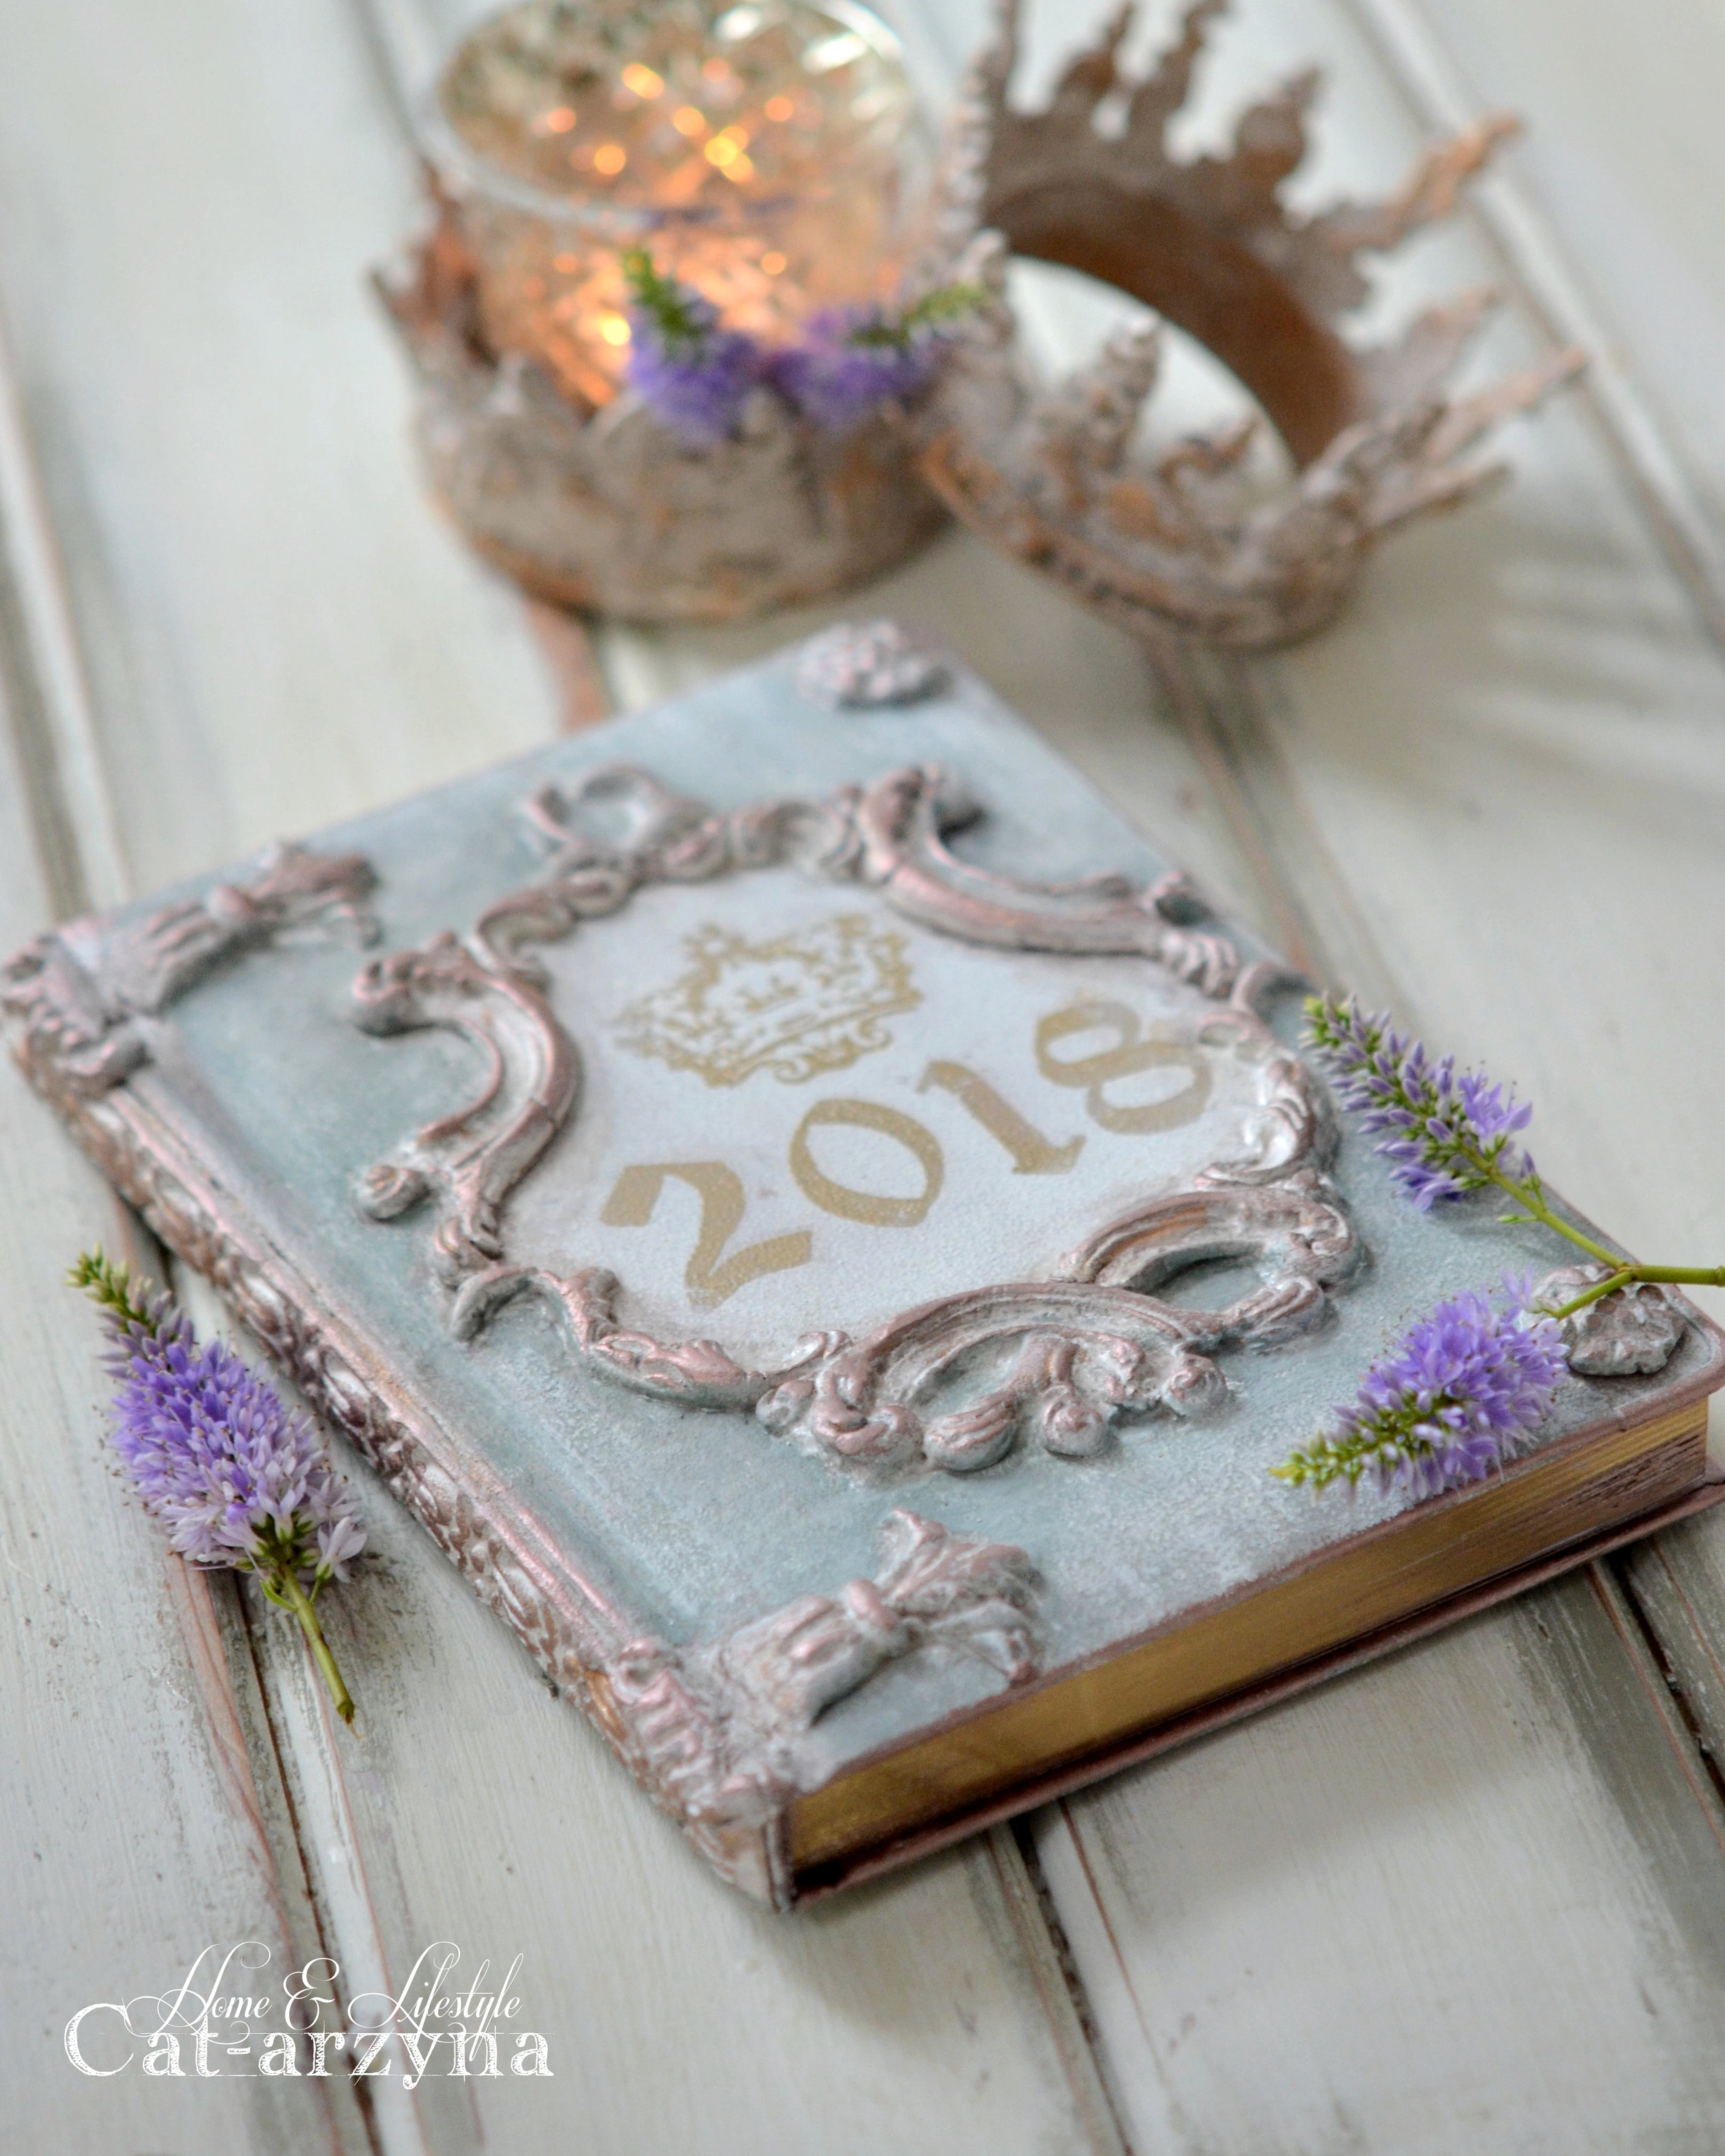 With the new year,comes new plans! Cat-arzyna altered this plain (and dark) planner for 2018 using a variety of mediums, tools and ingenuity. Lets see what she did...